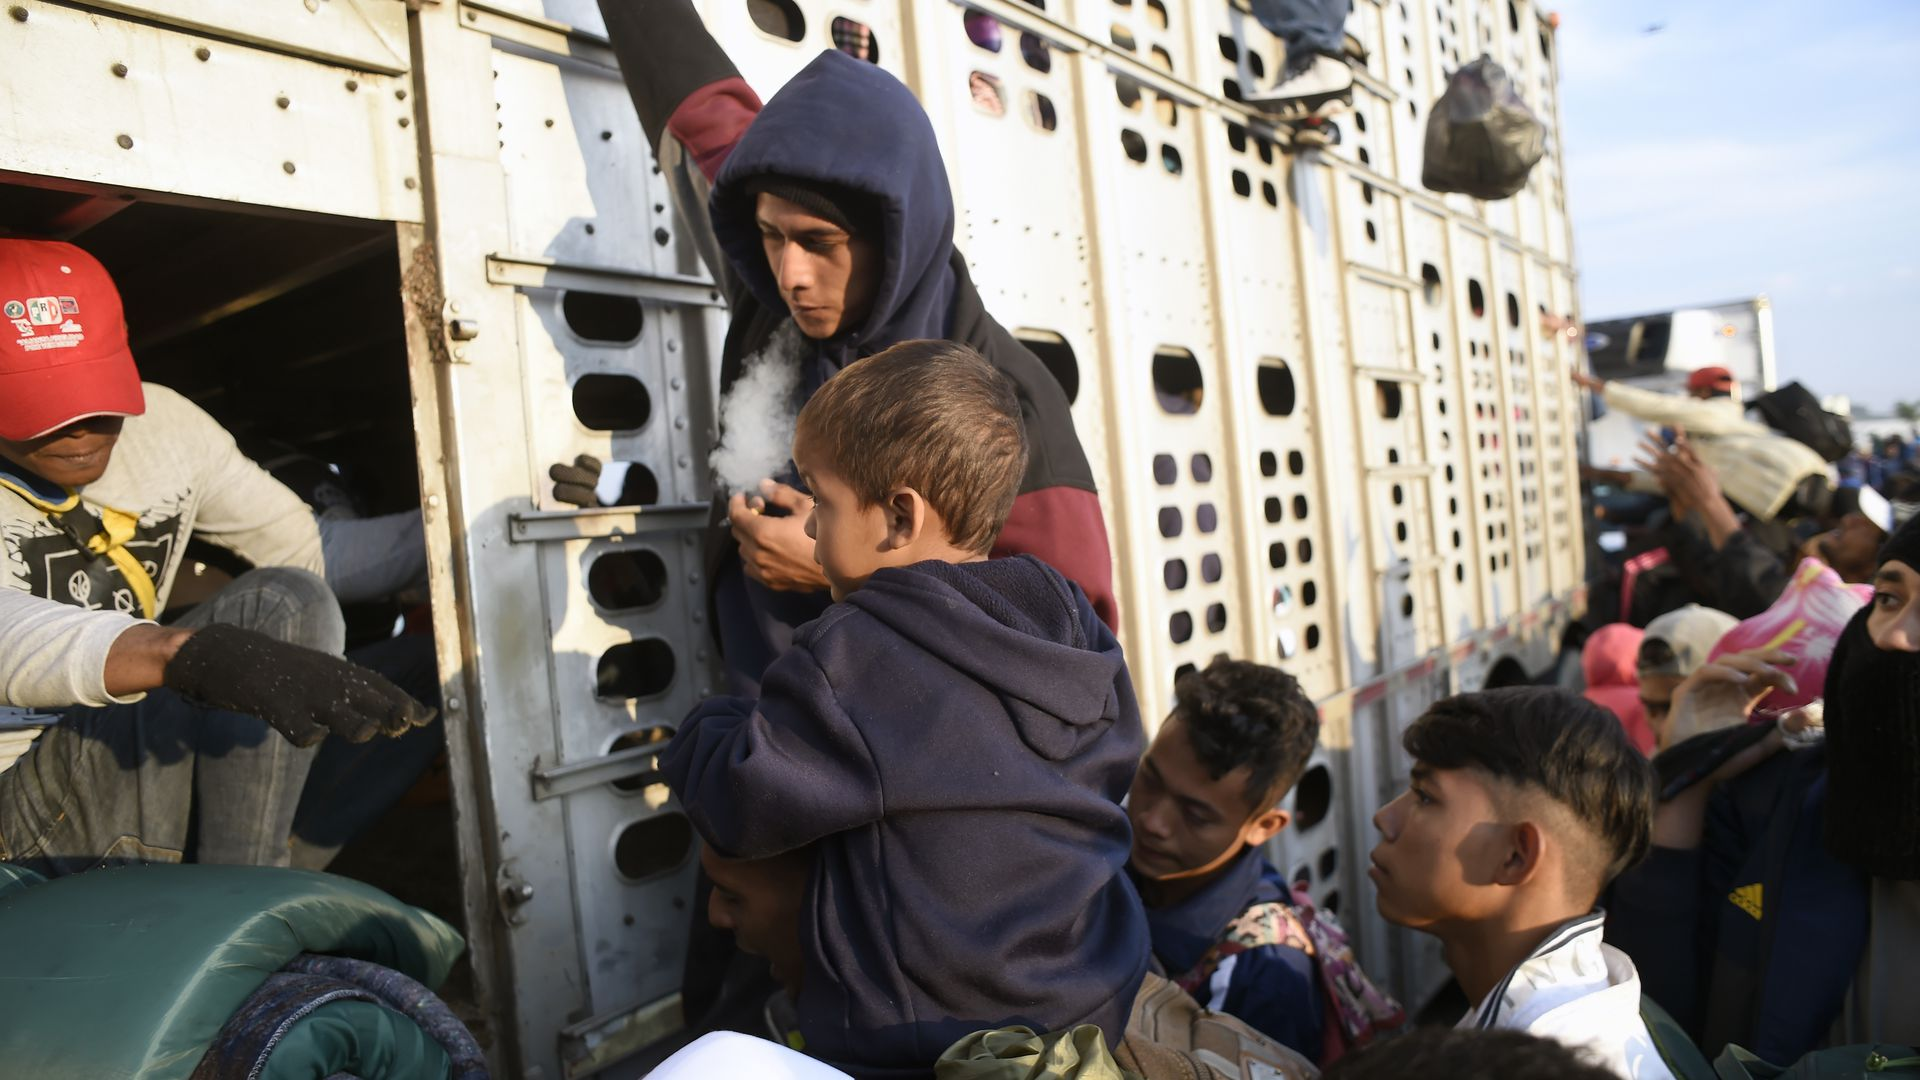 A crowd of Central American migrants, including some children, crowd around a boxcar where they are trying to get on to travel toward the U.S.